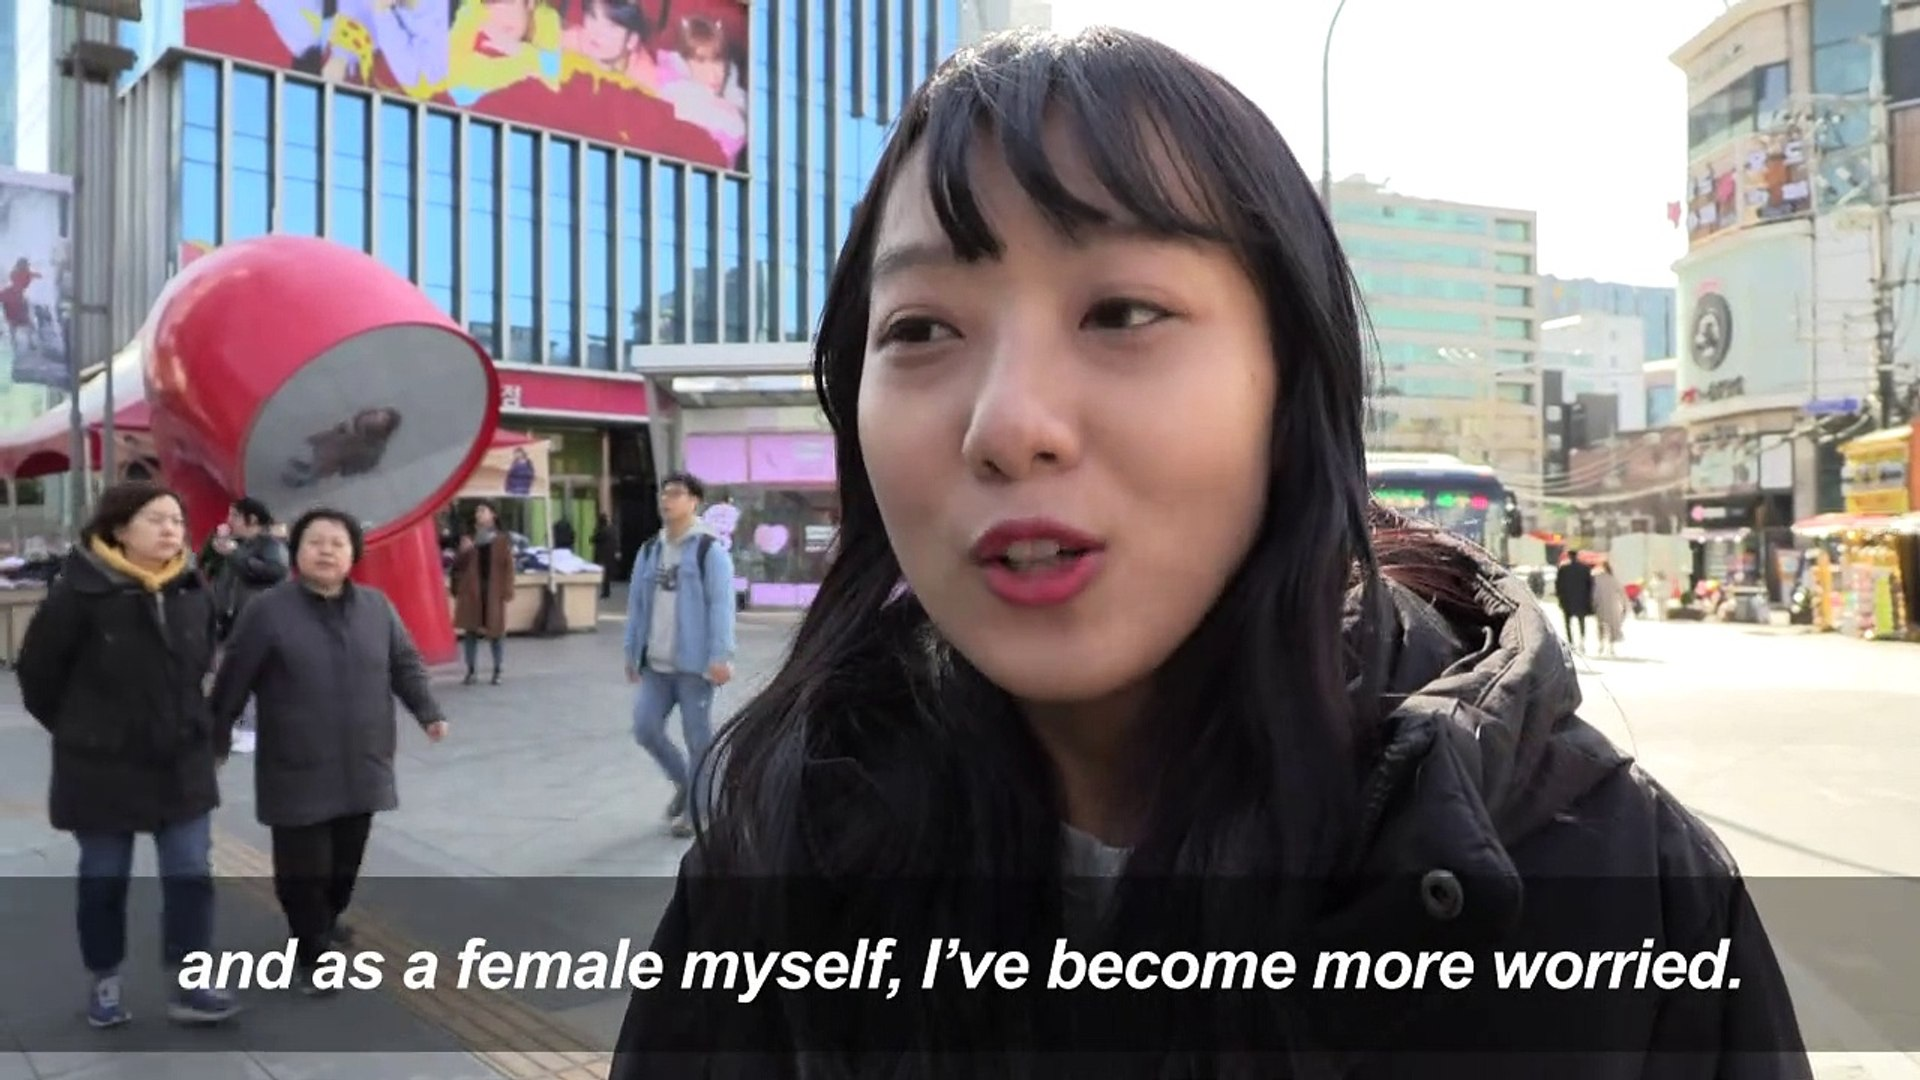 K-pop sex scandal: S. Koreans worry over social consequences